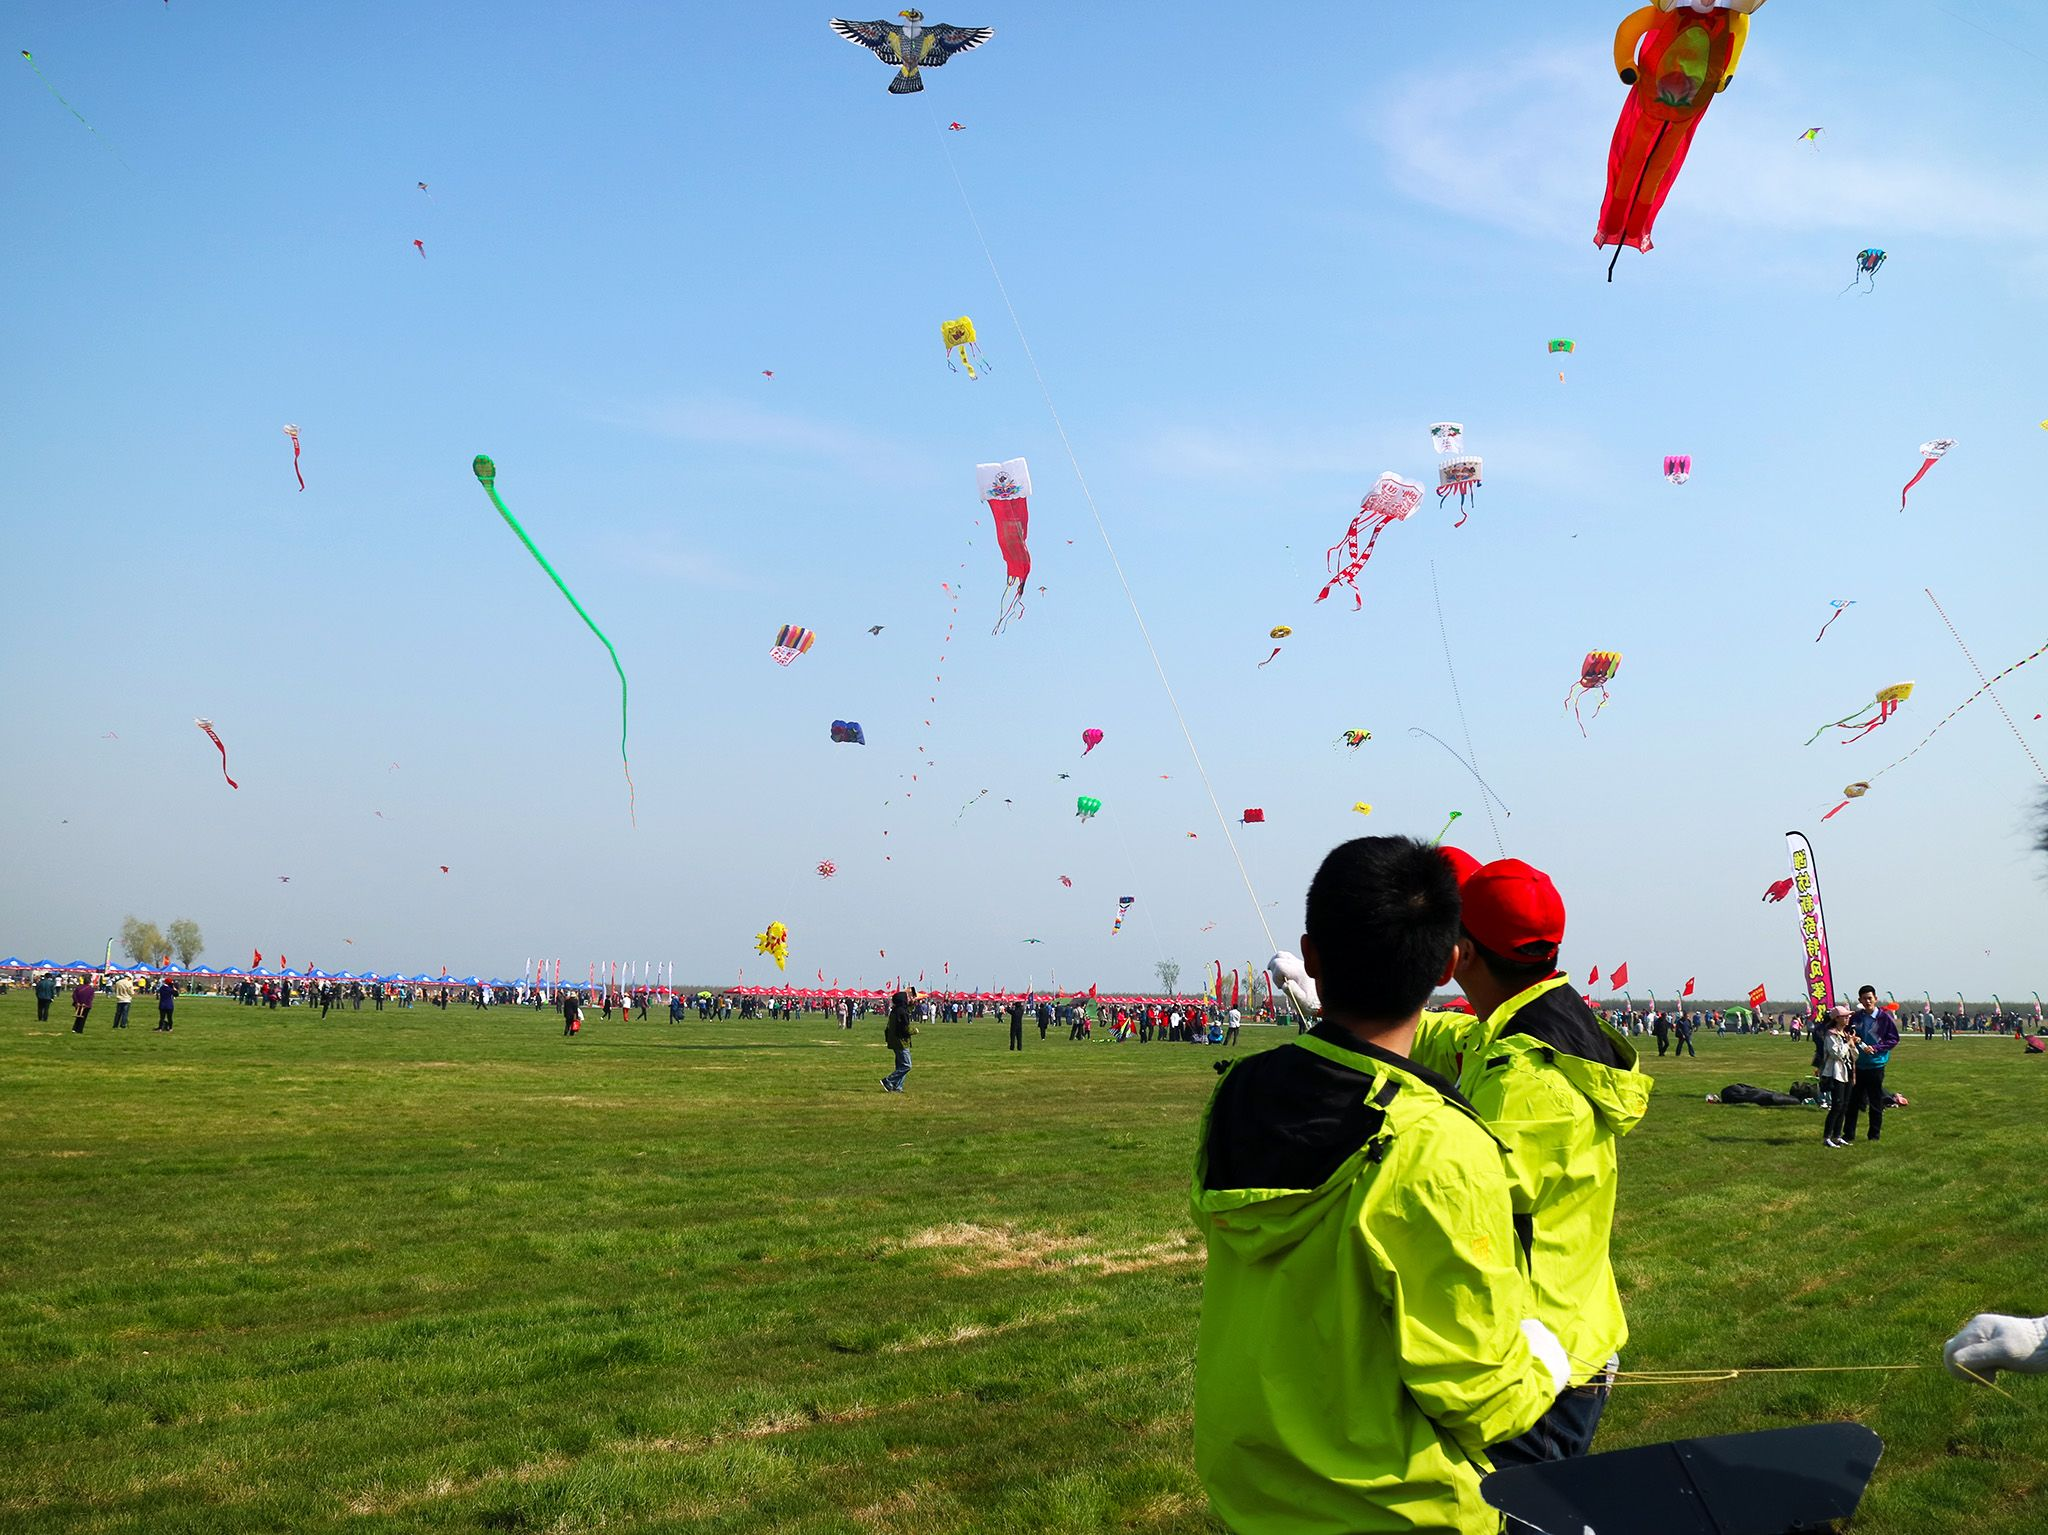 Weifang, Shandong Province, China: Kite makers showing off their creations at Weifang... [Photo of the day - August 2018]